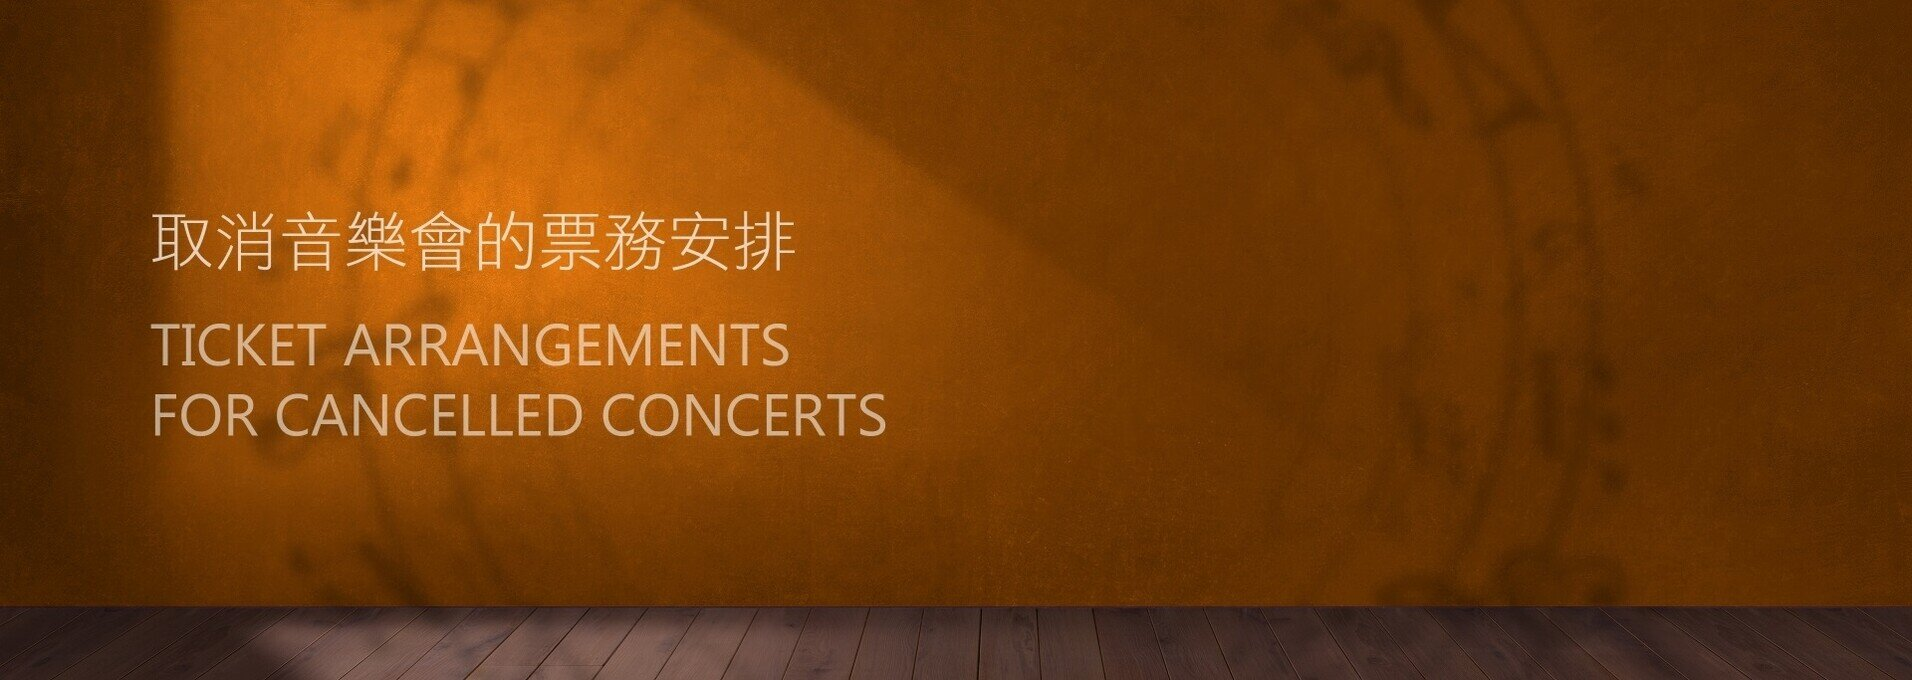 Concert Cancellations in December 2020